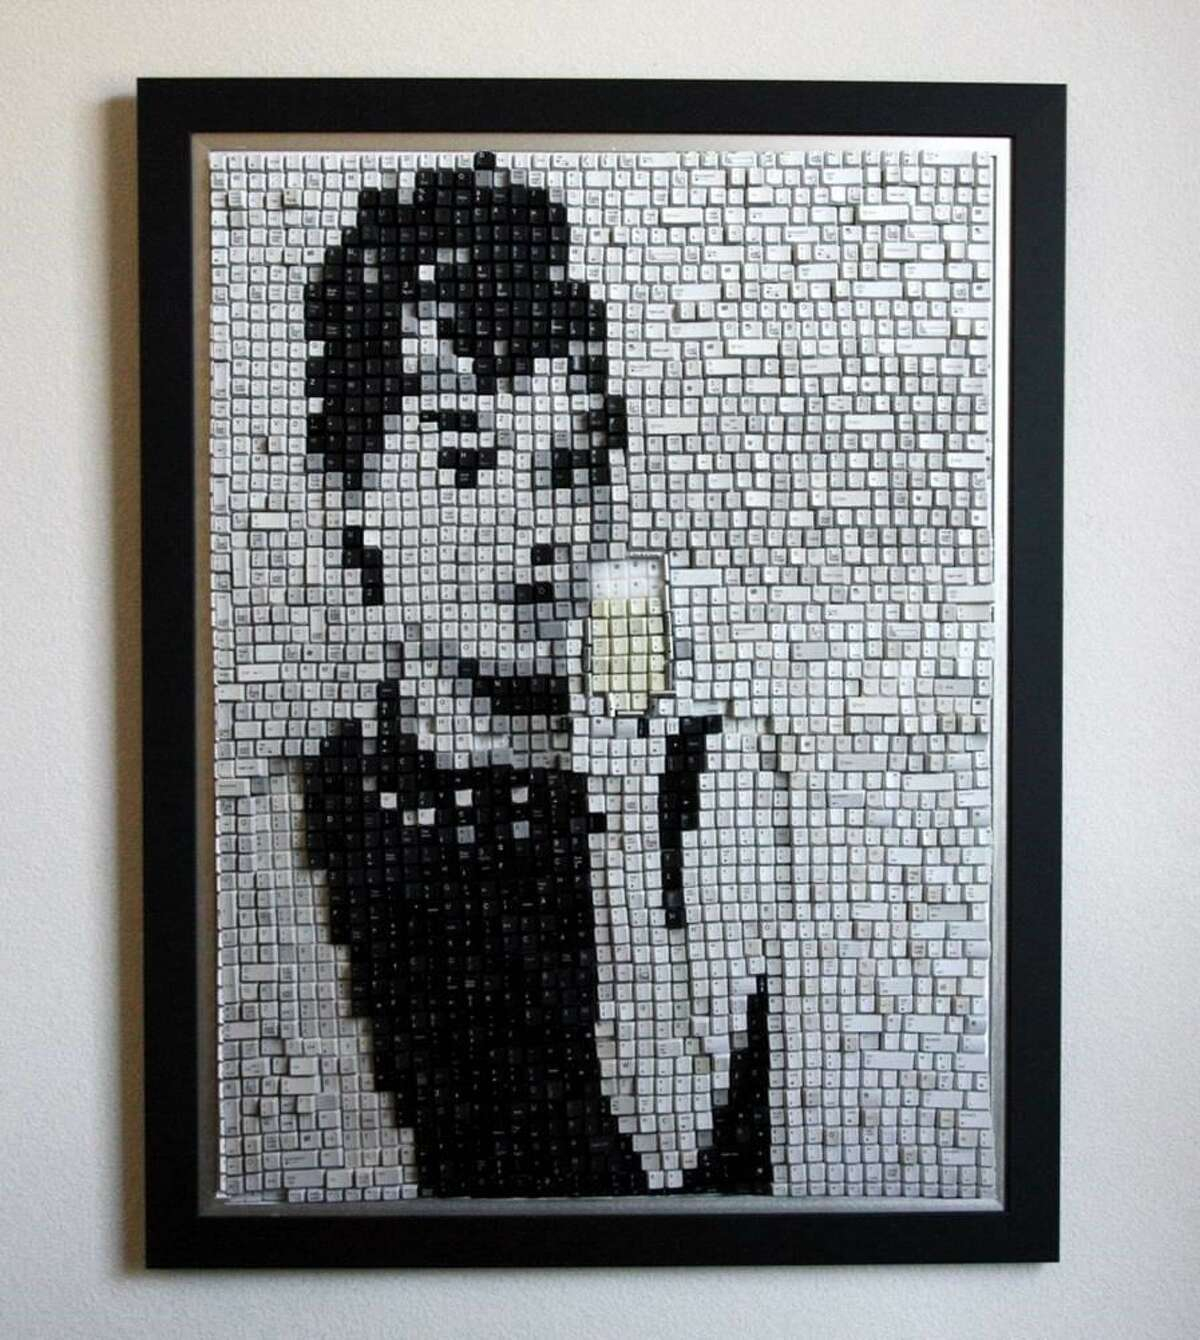 Original artwork by Carol Baskin, featuring Audrey Hepburn sipping on a Champagne, is one of the items that will be auctioned off.